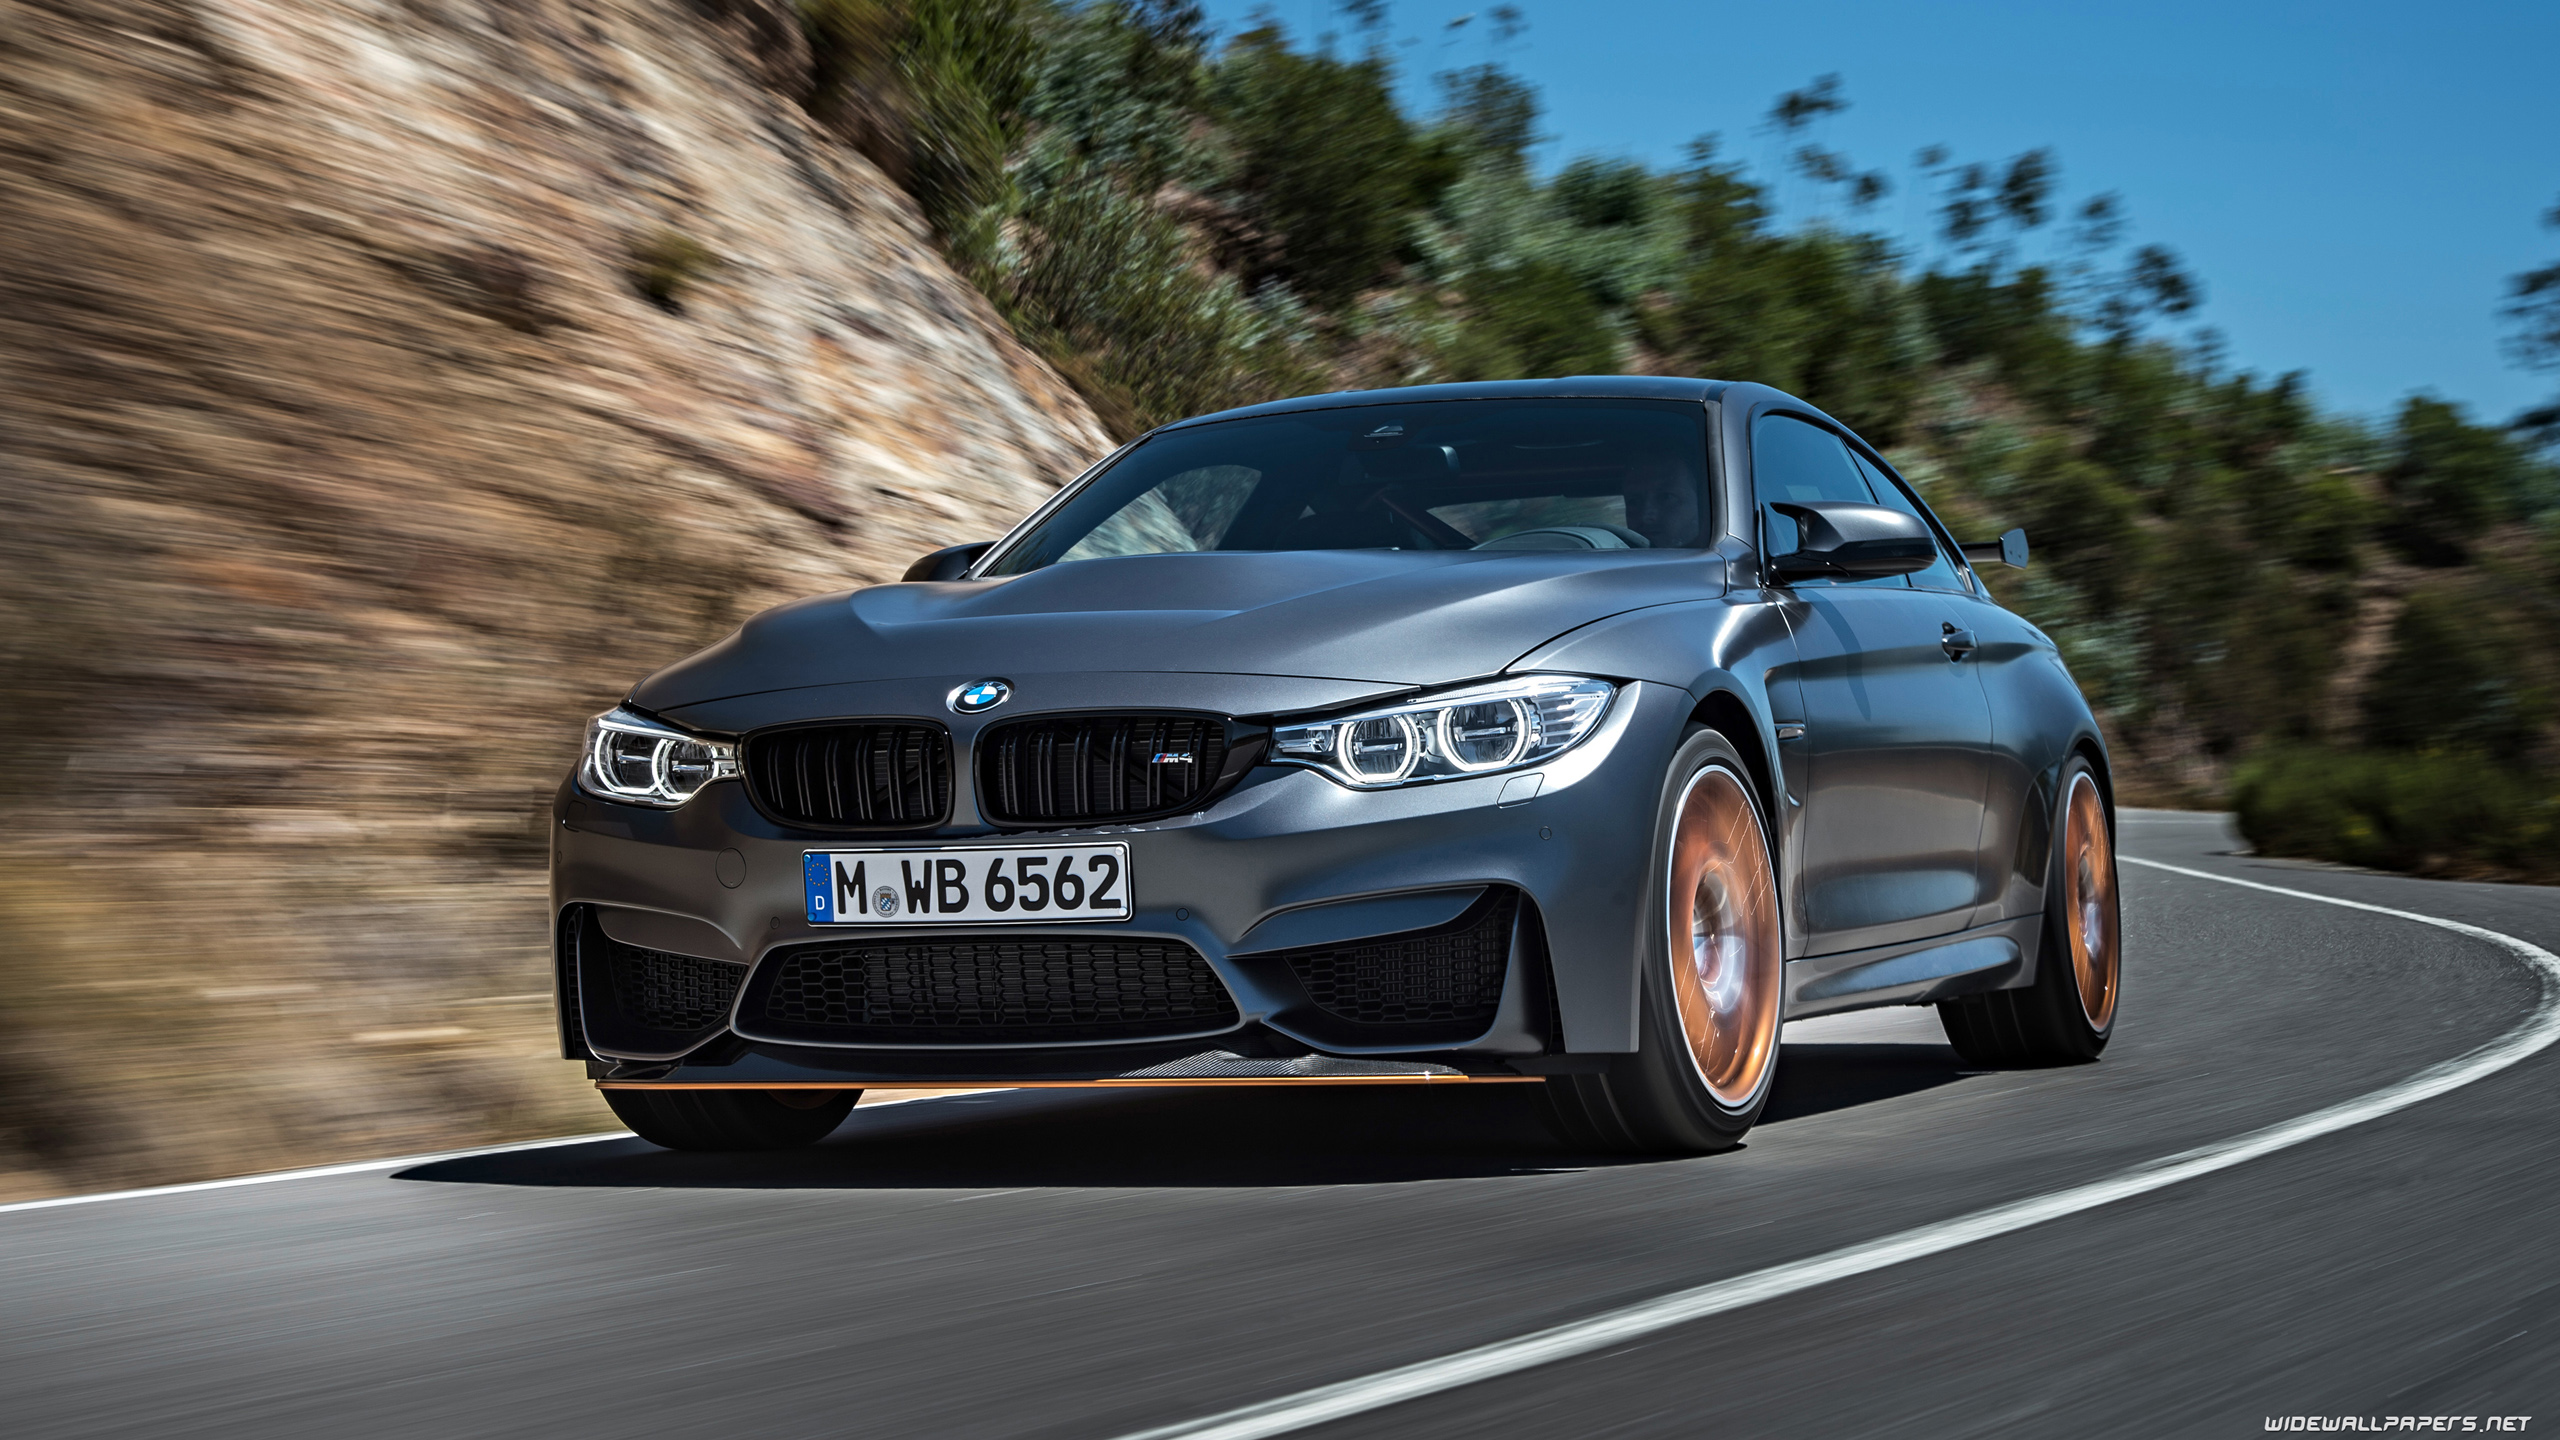 BMW M4 GTS 2017 HD Wallpapers